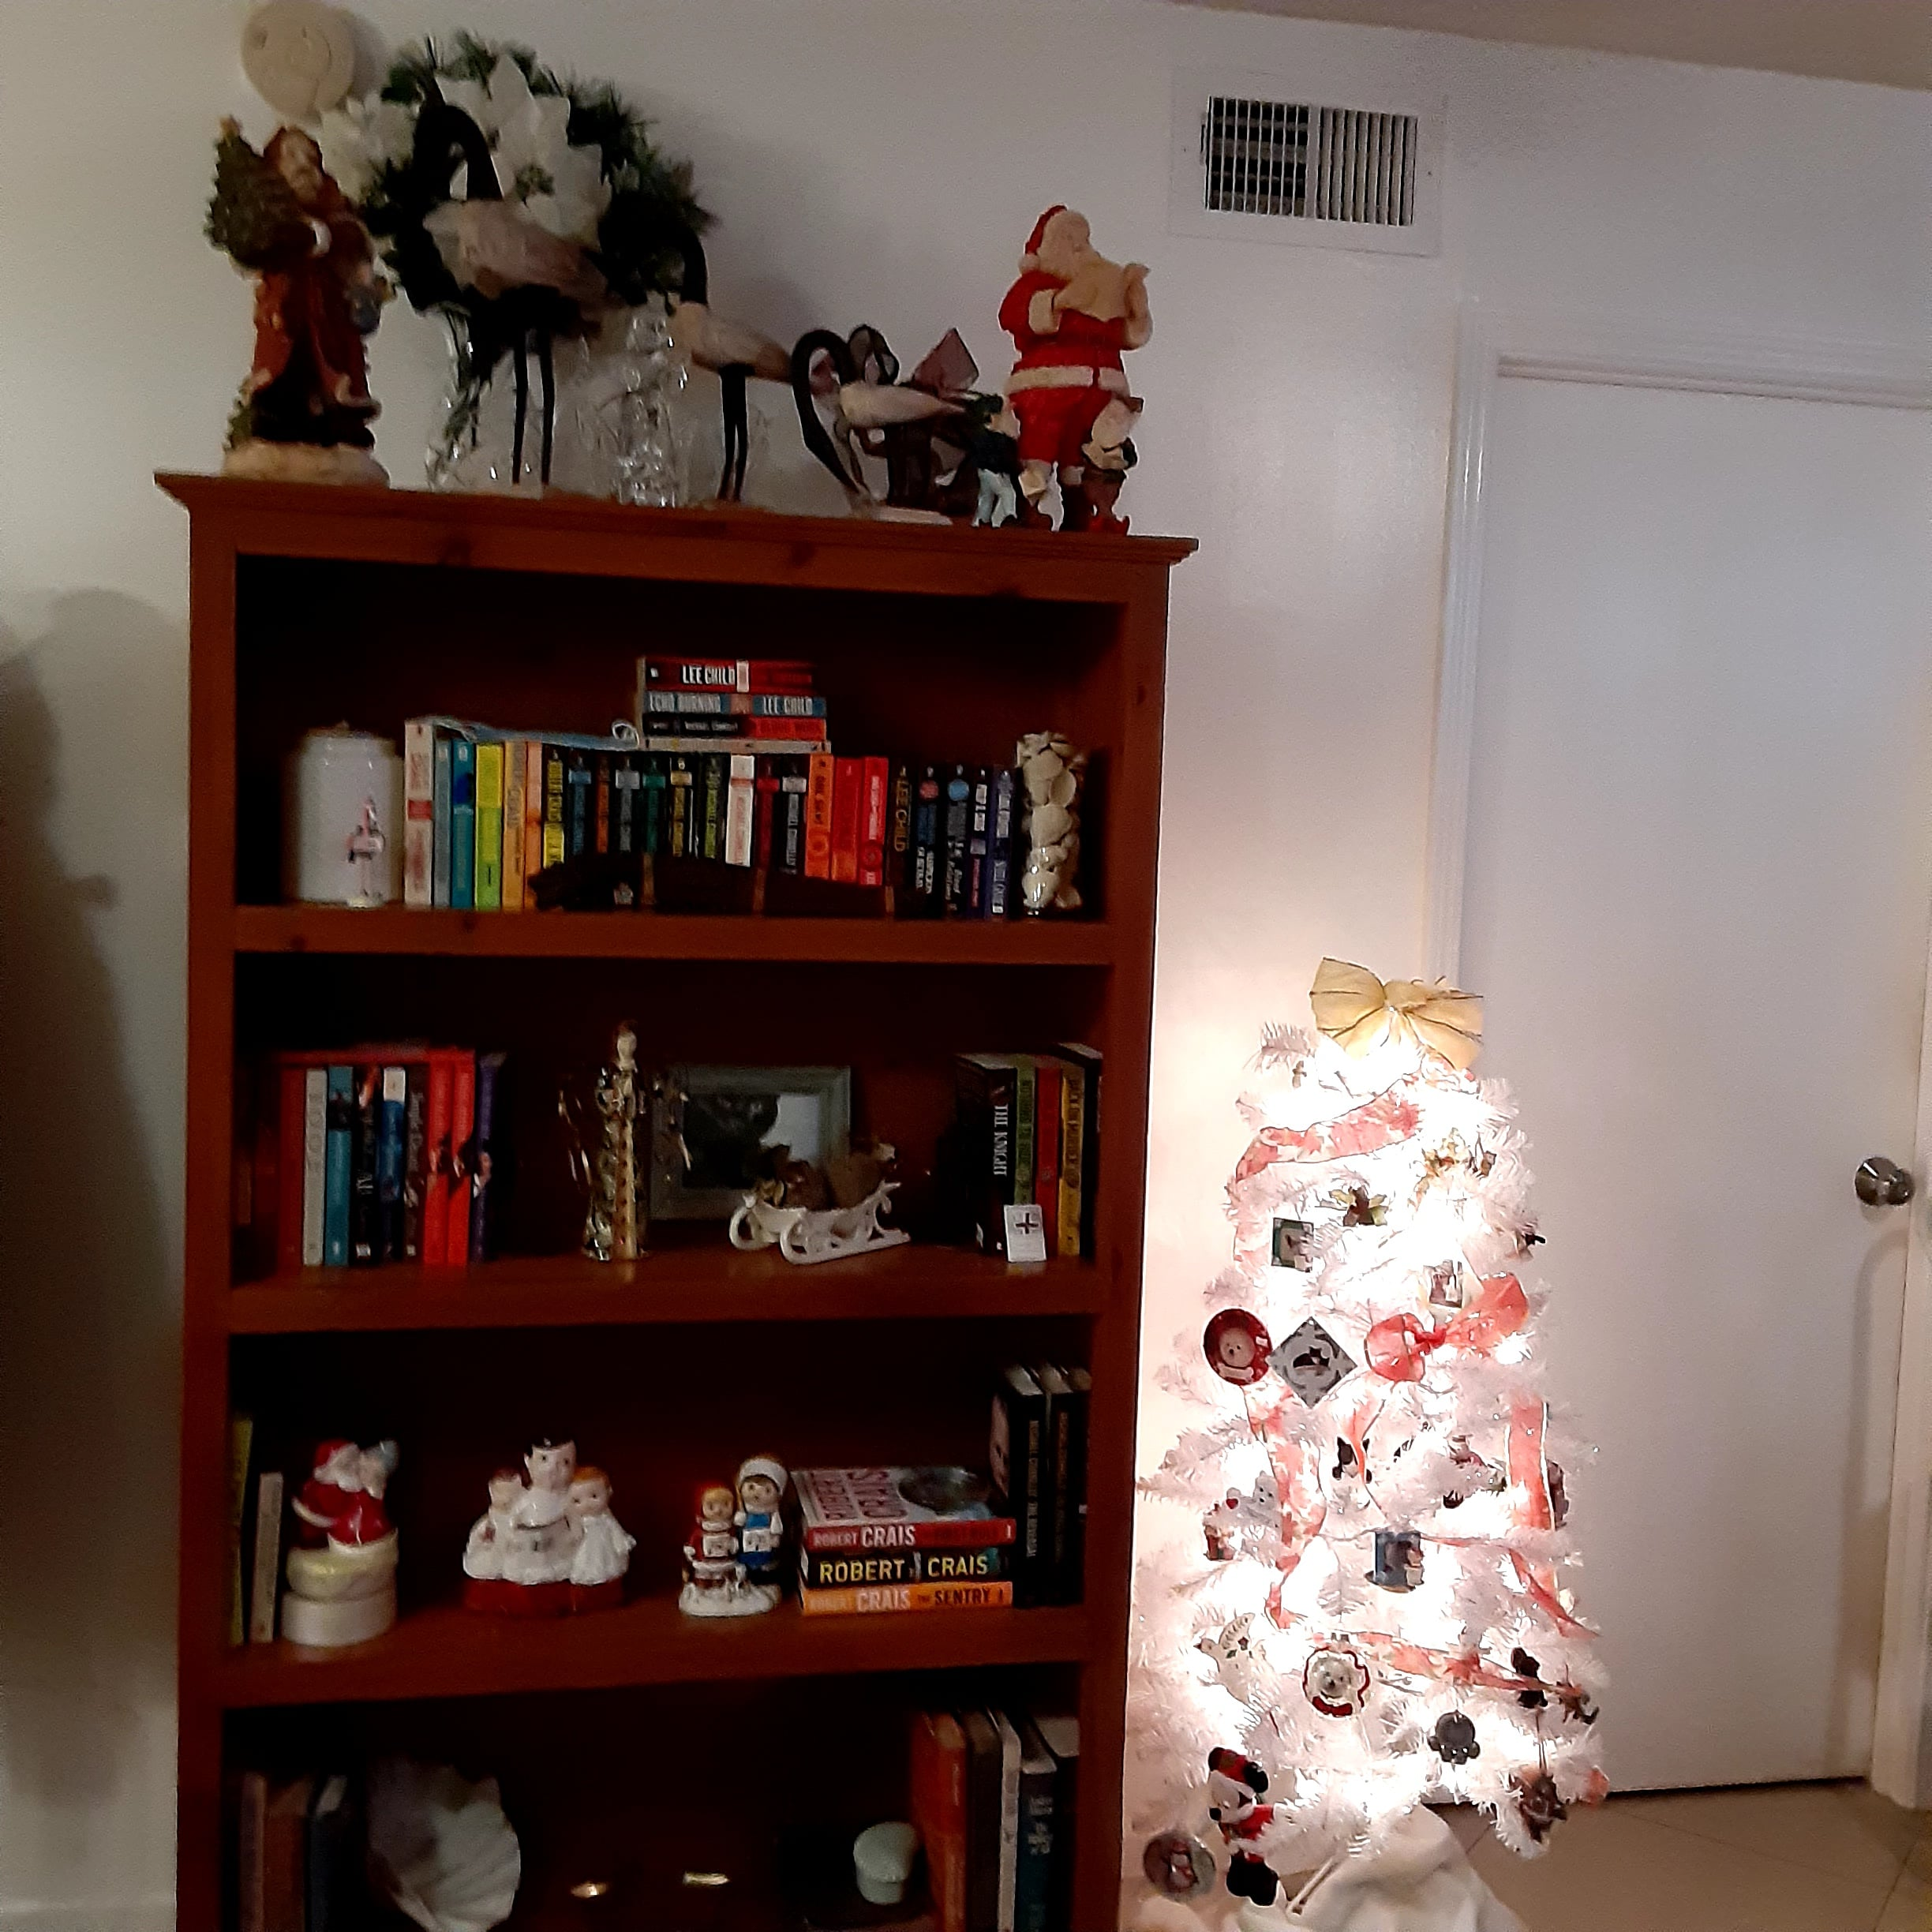 Bookcase Wht Tree Xmas FL 12.20